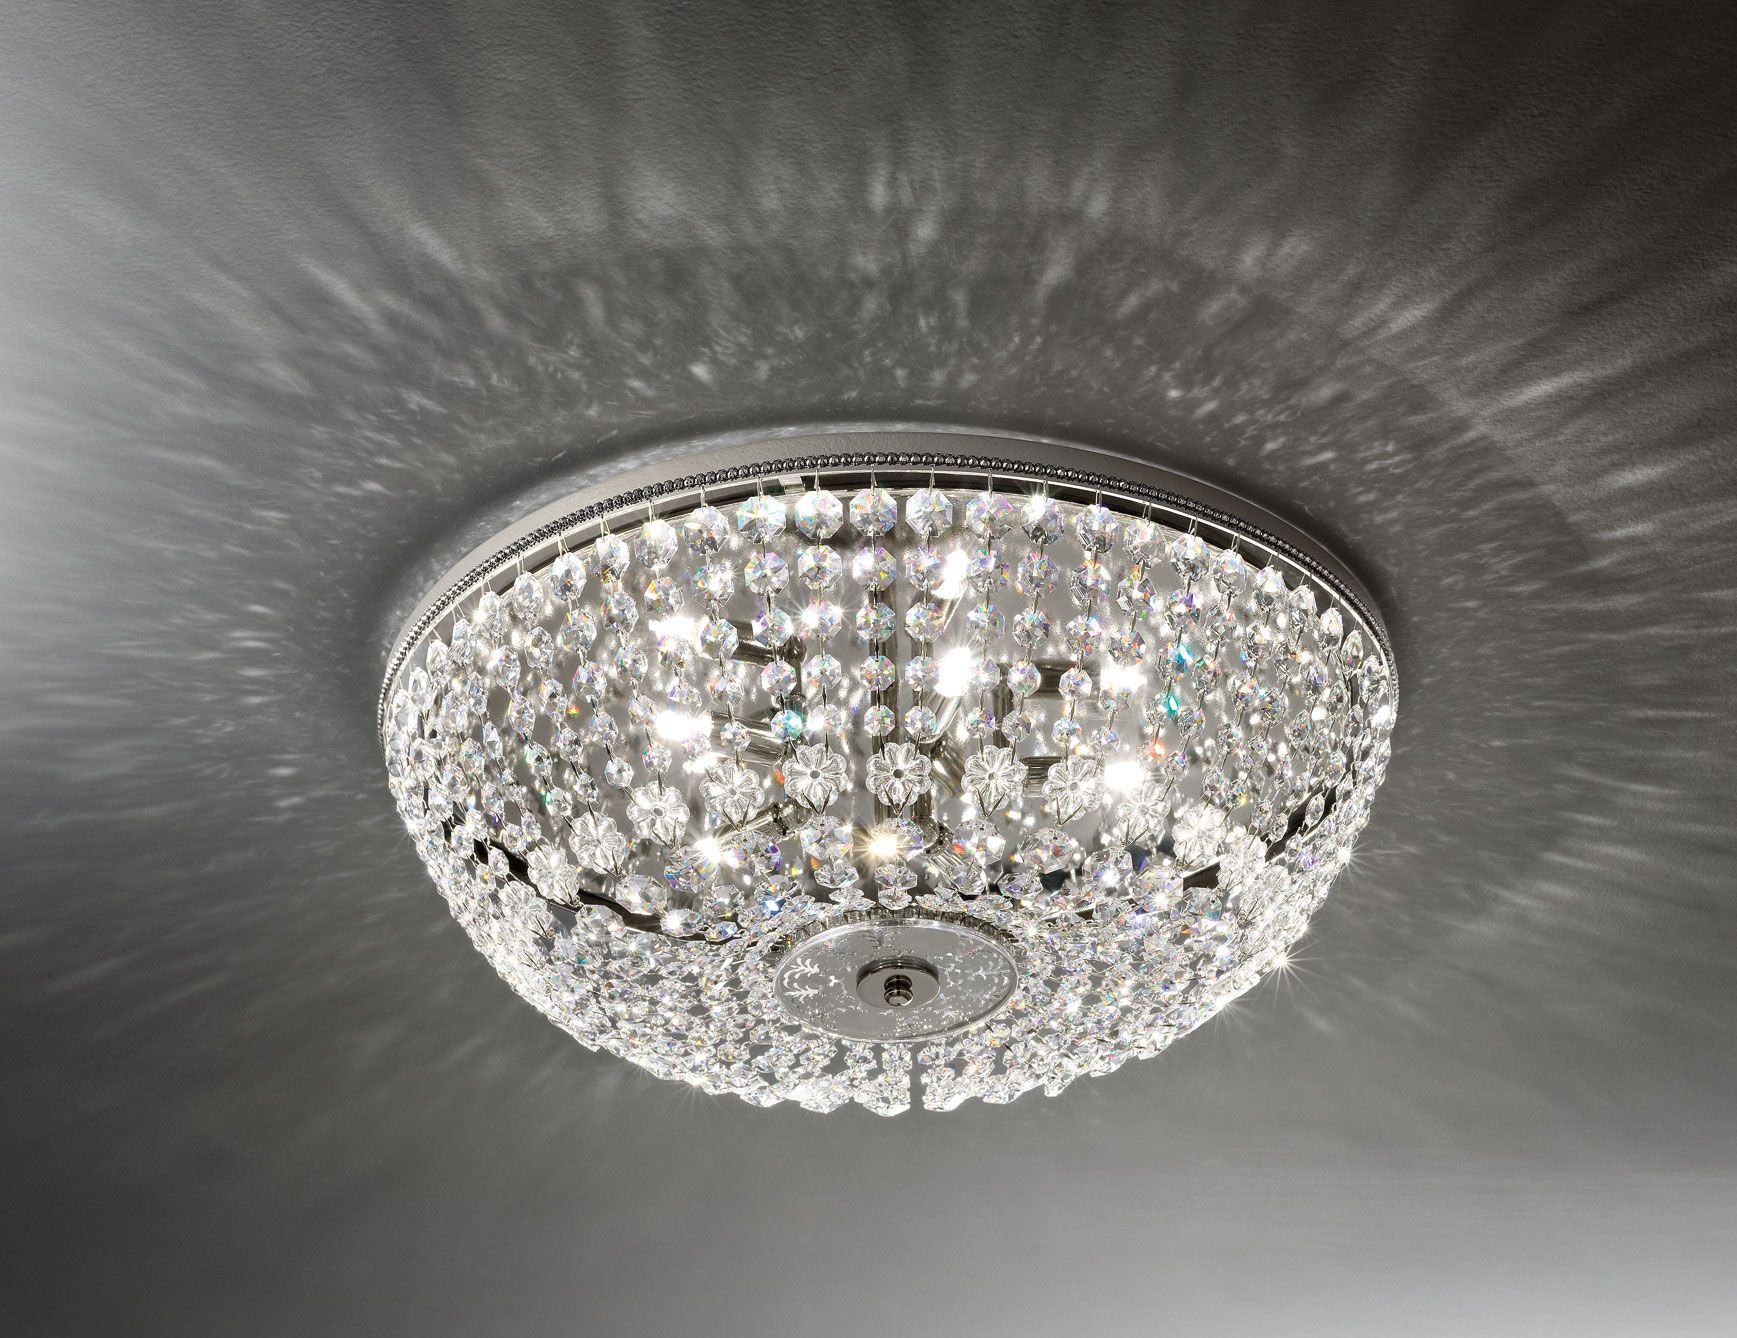 Swarovski Crystal Lighting Fixtures For Bathroom Upstairs